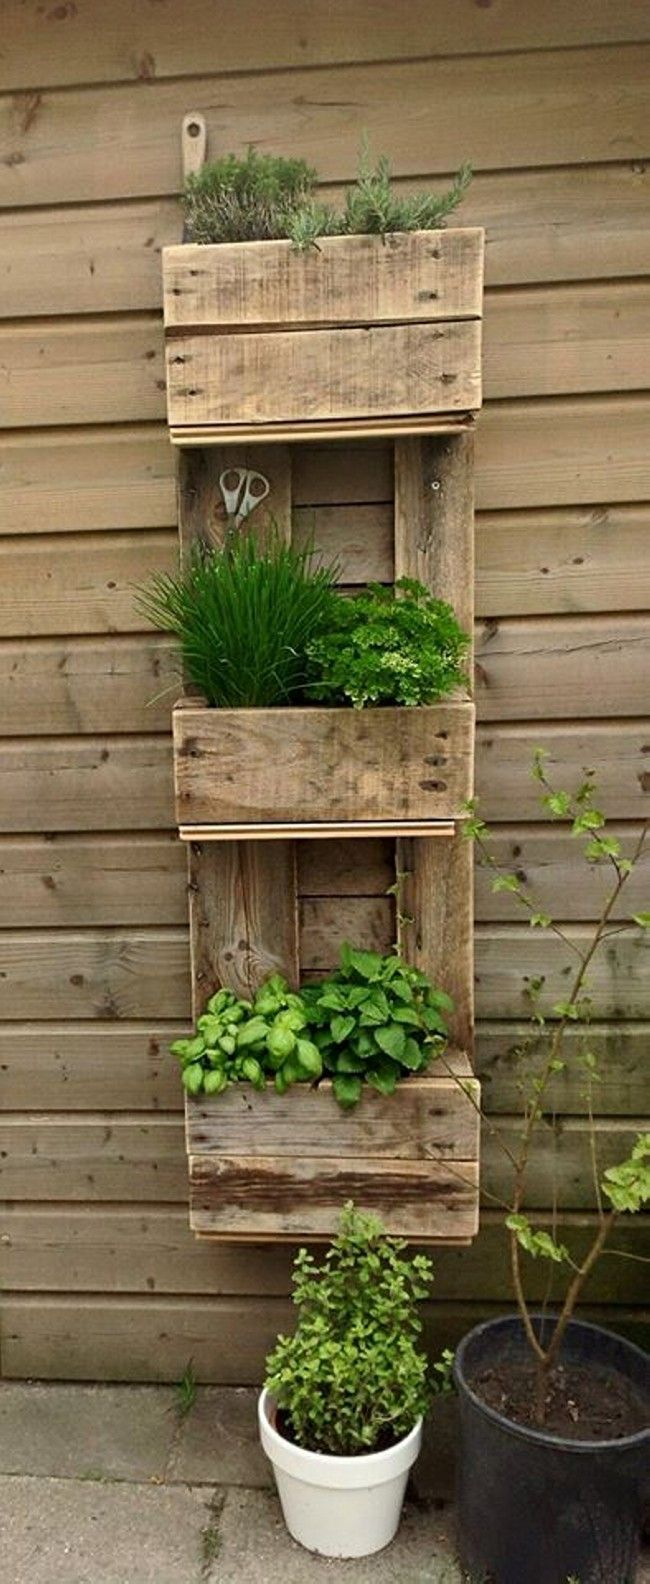 Home Decor Ideas with Wood Pallet - http://centophobe.com/home-decor-ideas-with-wood-pallet/